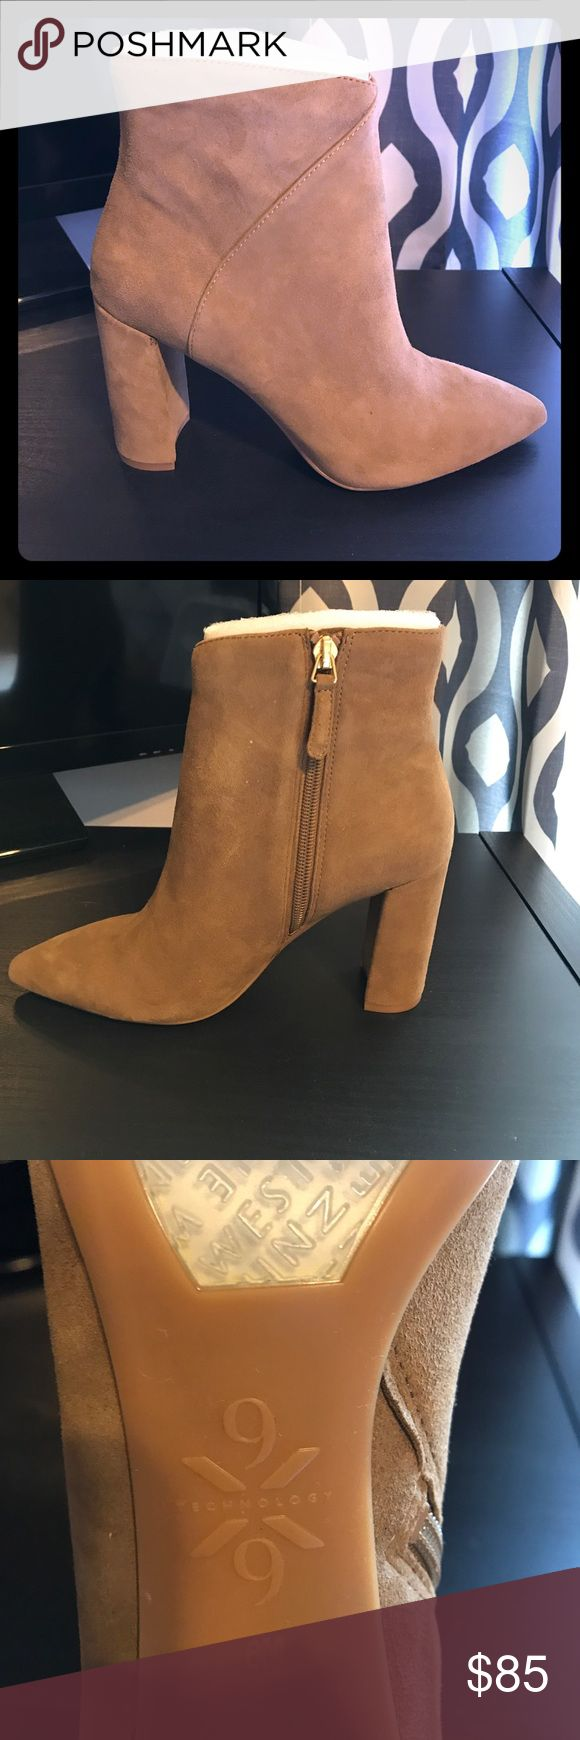 "🎀NWOB Nine West Suede Booties🎀 Nothing screams Fall more than a pair of pointed toe, camel colored suede booties! OBSESSED with the 3 1/2"" chunky heel! I received these in my stitchfix but then realized that where I live I wouldn't be wearing these for long 😔 my loss is your gain! These have never been worn & will come in the bag I received them in. I purchased these for $120 so price is firm! Size 6. Smoke FREE home as always! 💕 Nine West Shoes Ankle Boots & Booties"